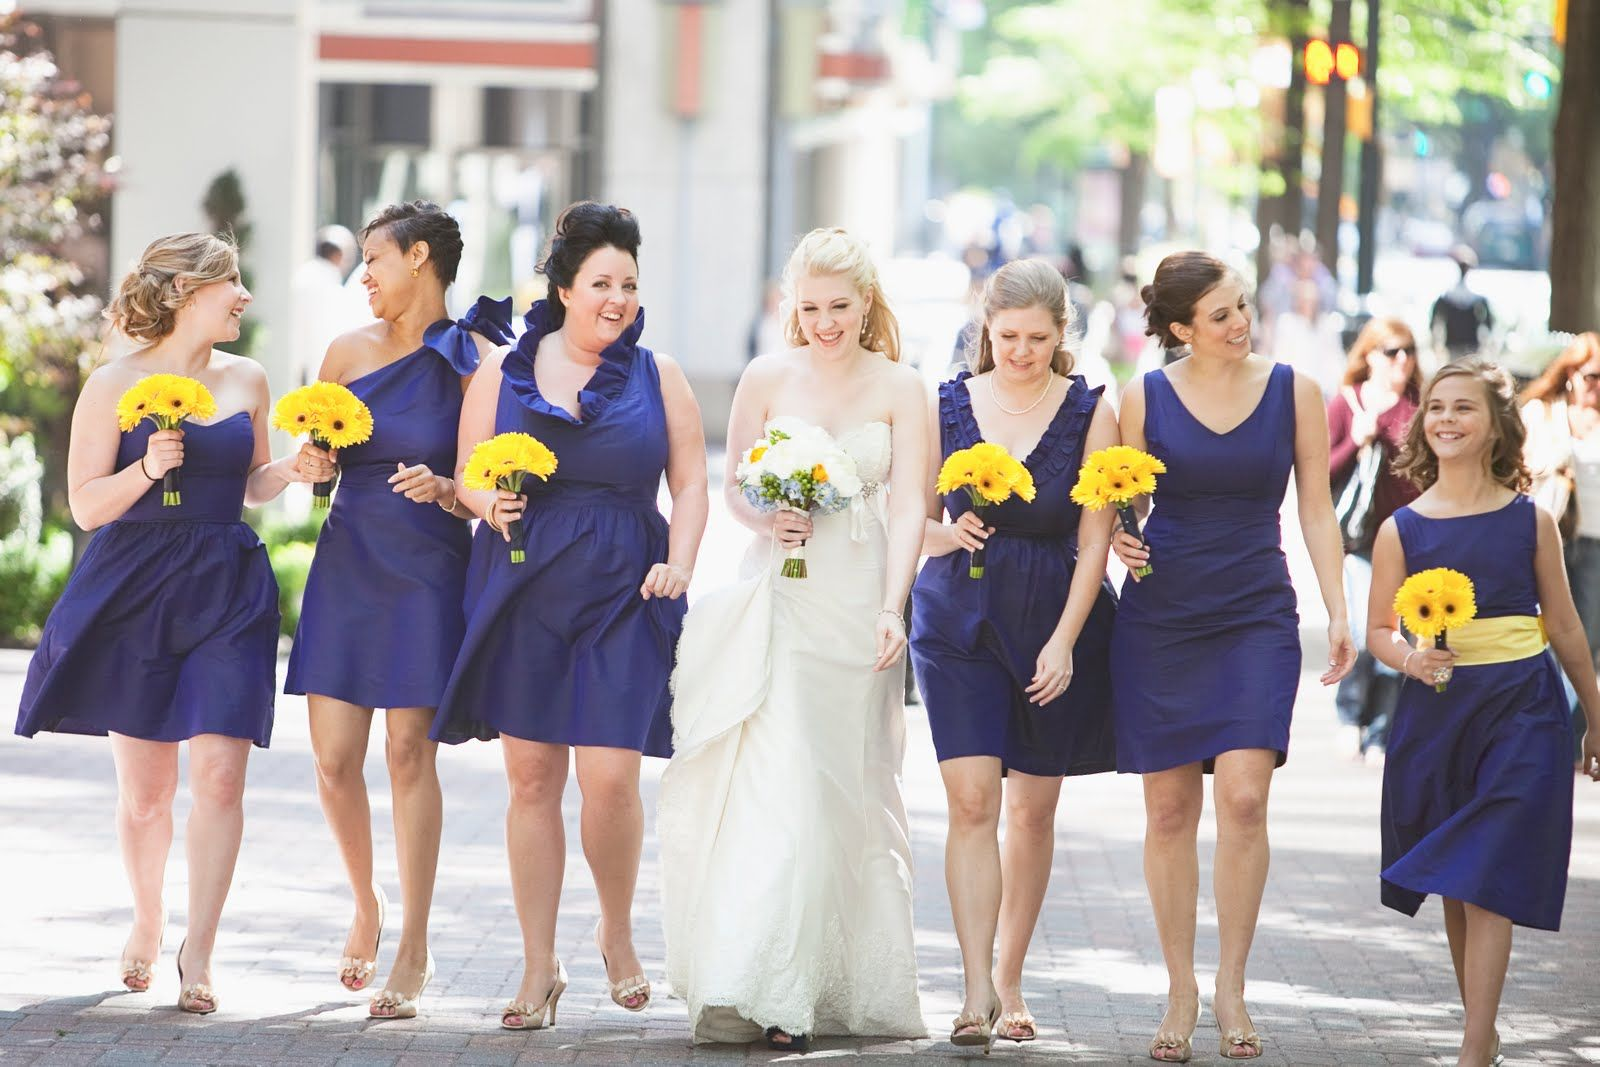 Bridesmaid dresses help wedding dress wedding and wedding bridesmaid dresses help ombrellifo Gallery